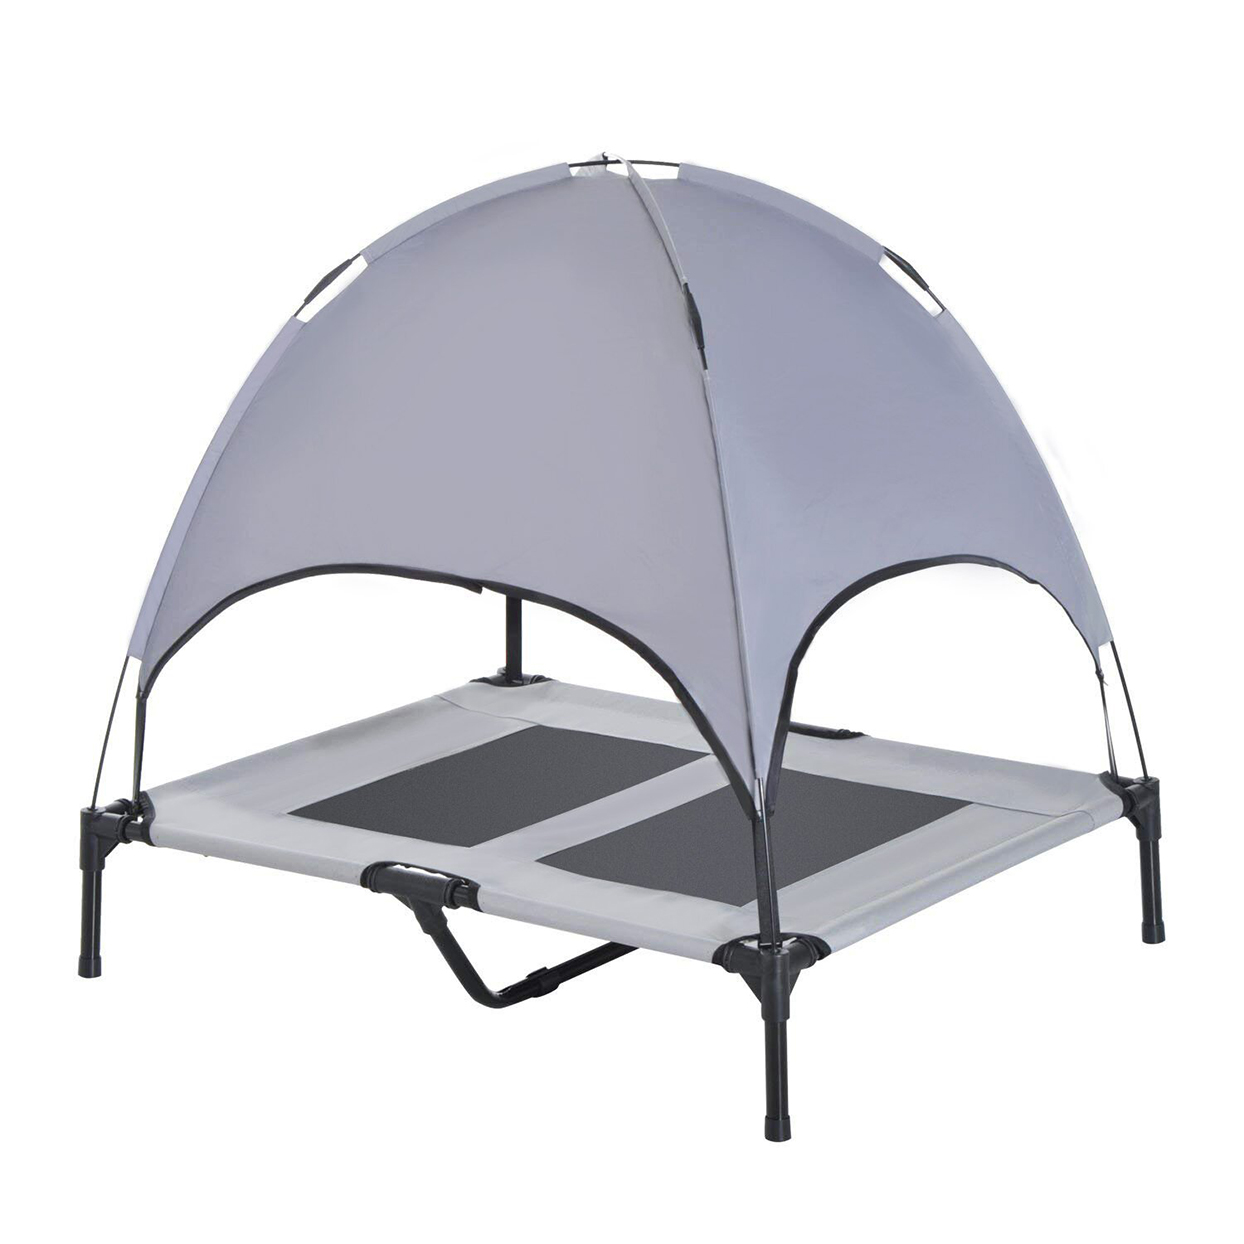 Harter Cot Elevated Cooling Dog Bed with Canopy Shade